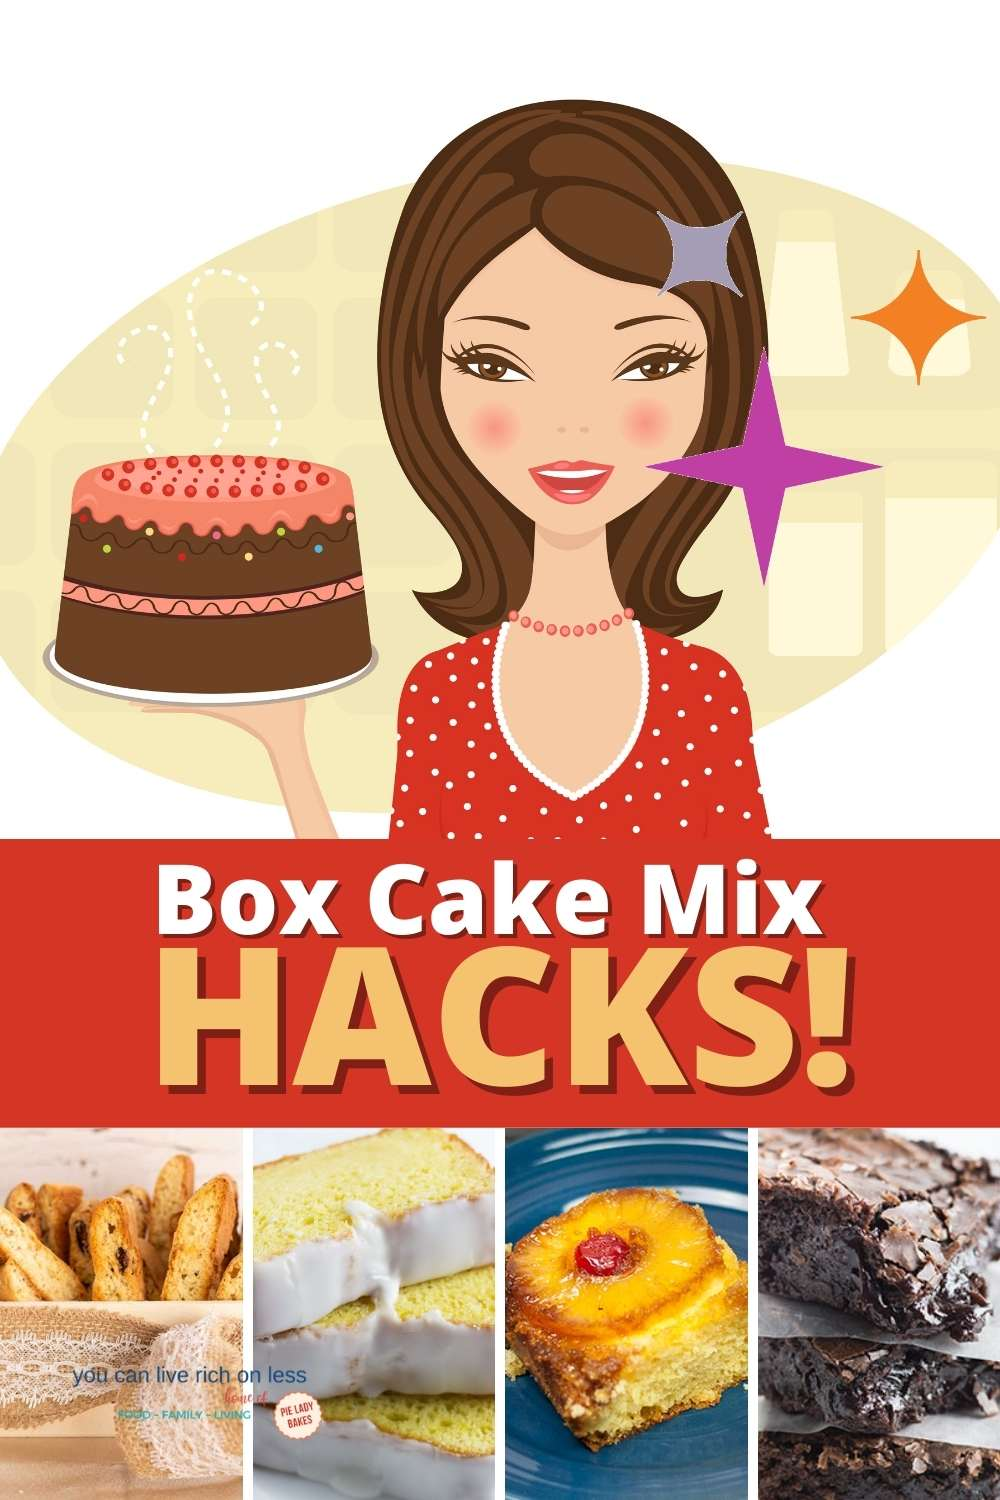 cartoon woman holding cake in red and white polka dot dress with 4 images of cake mix hack recipes on the bottom